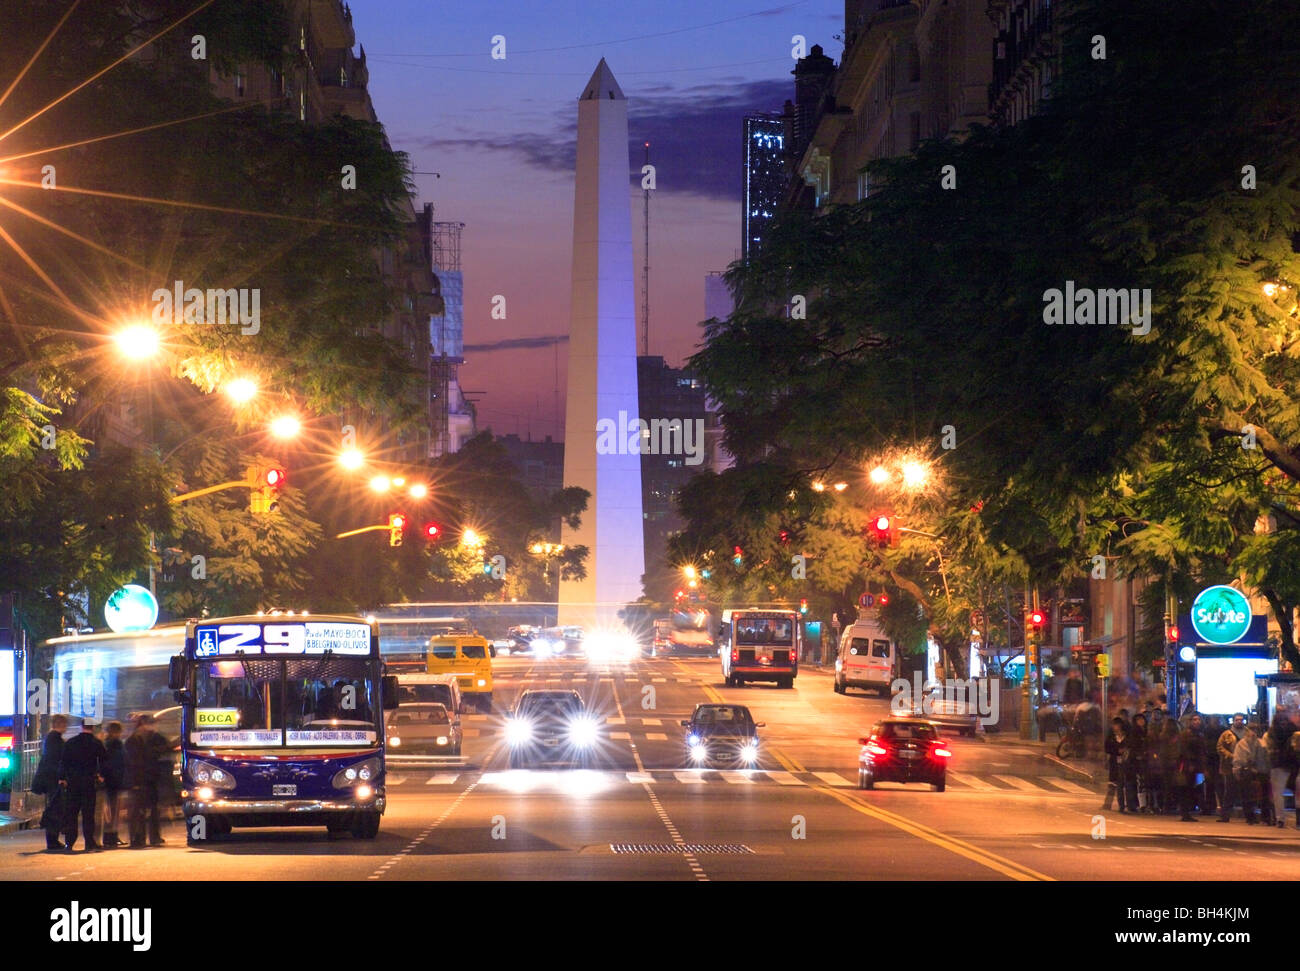 Roque Saenz Peña Ave., at dusk. Obelisk monument at background. Buenos Aires, Argentina. - Stock Image